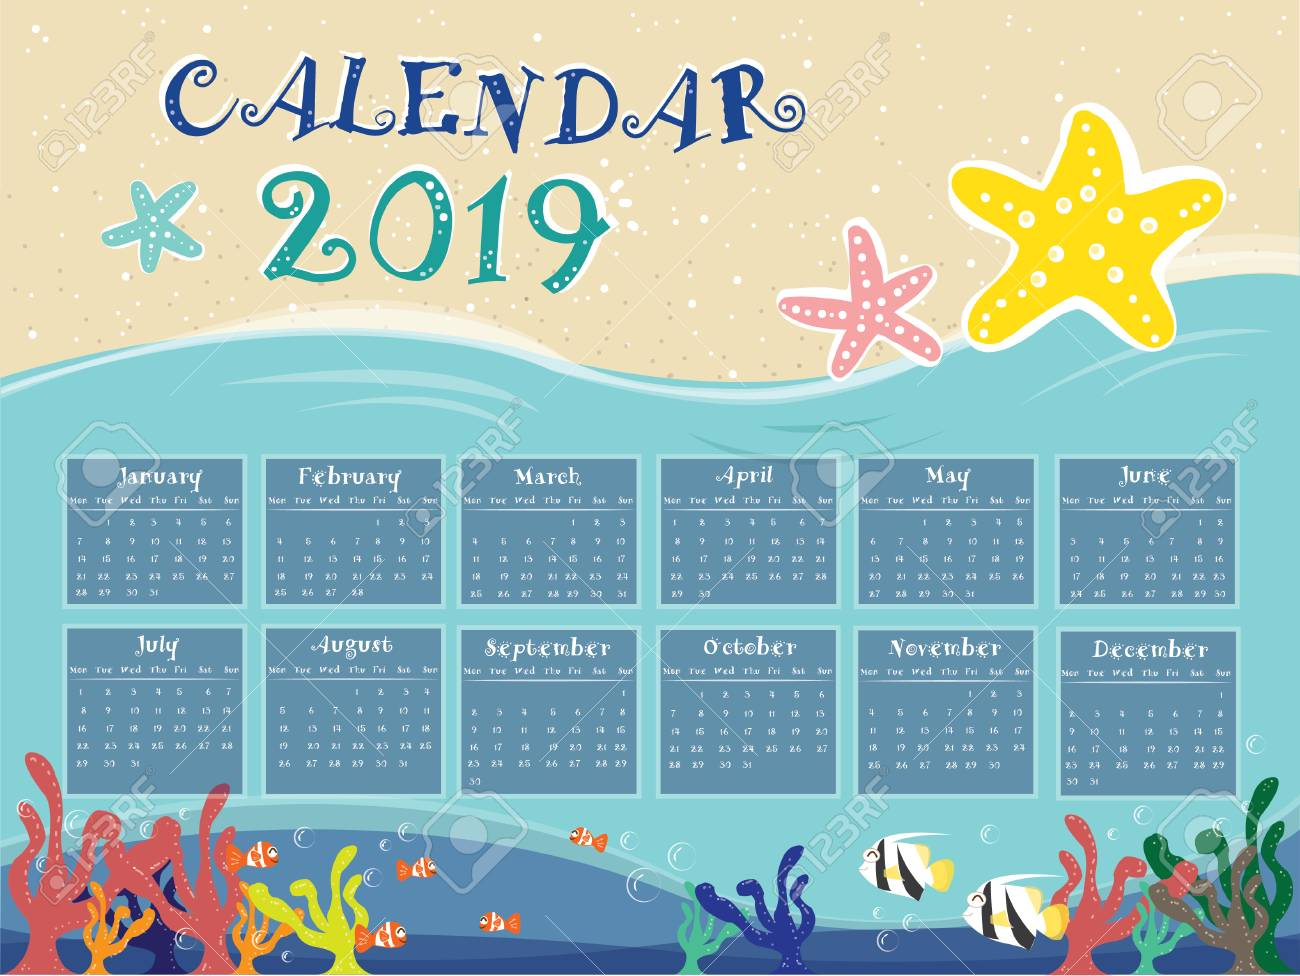 2019 Beach Calendar The Relax Beach Calendar For New Year 2019. All Month. Royalty